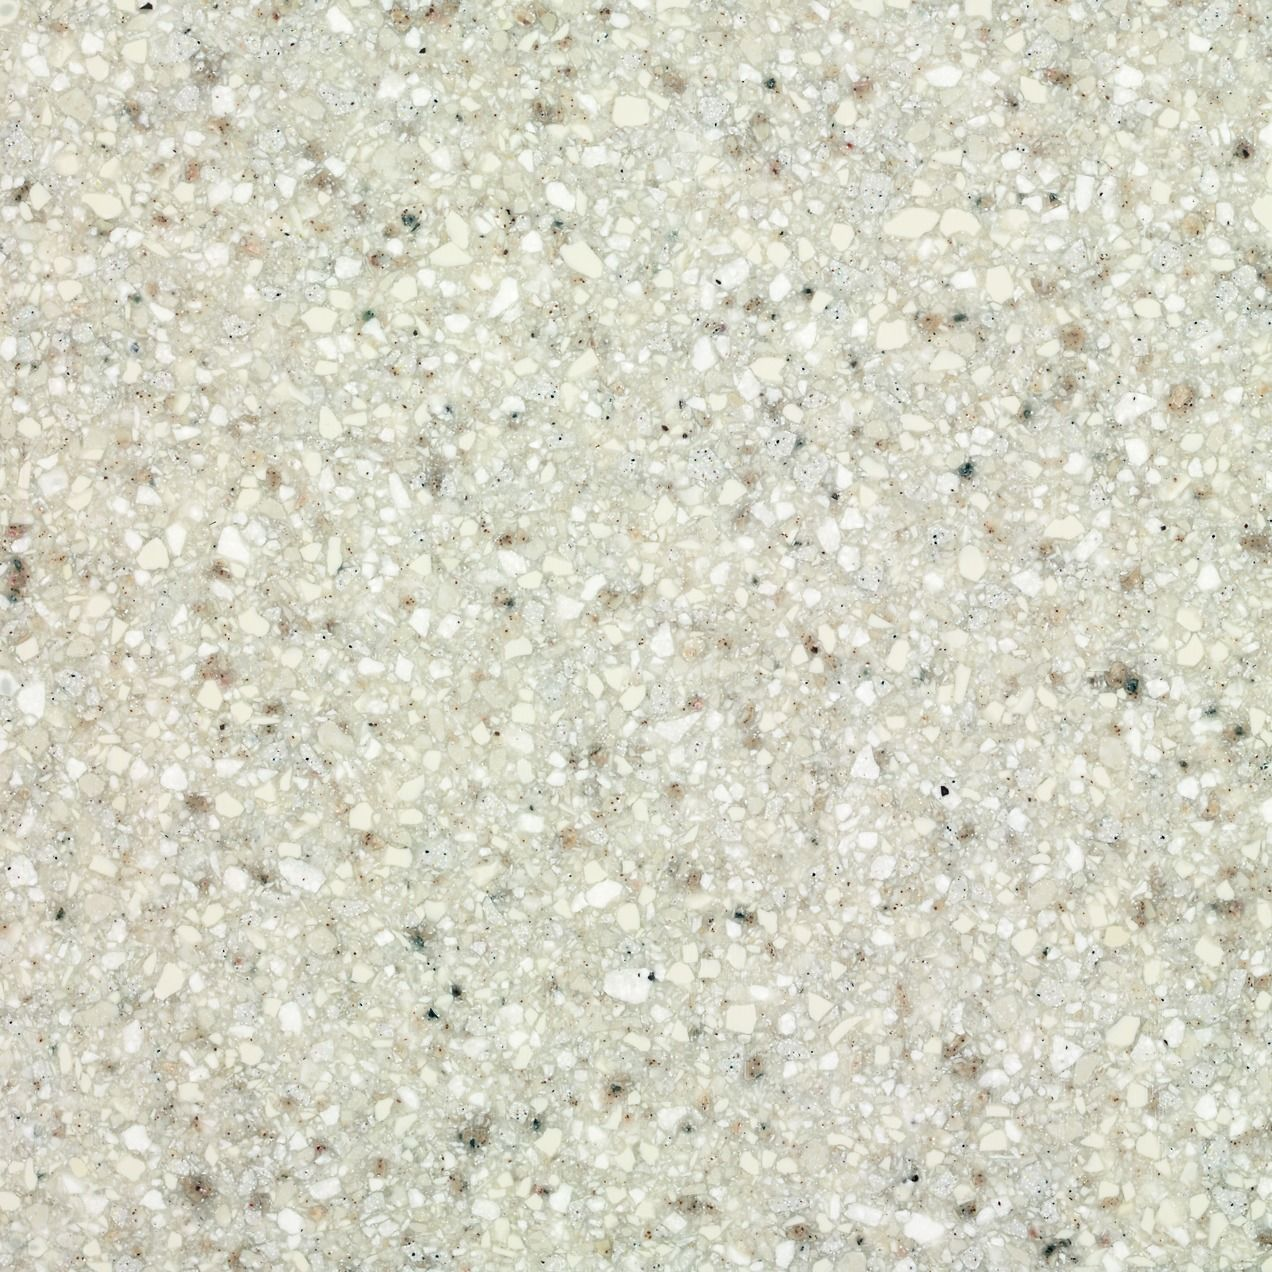 Granite colors white sands kitchen and bathroom for Kitchen granite countertops colors